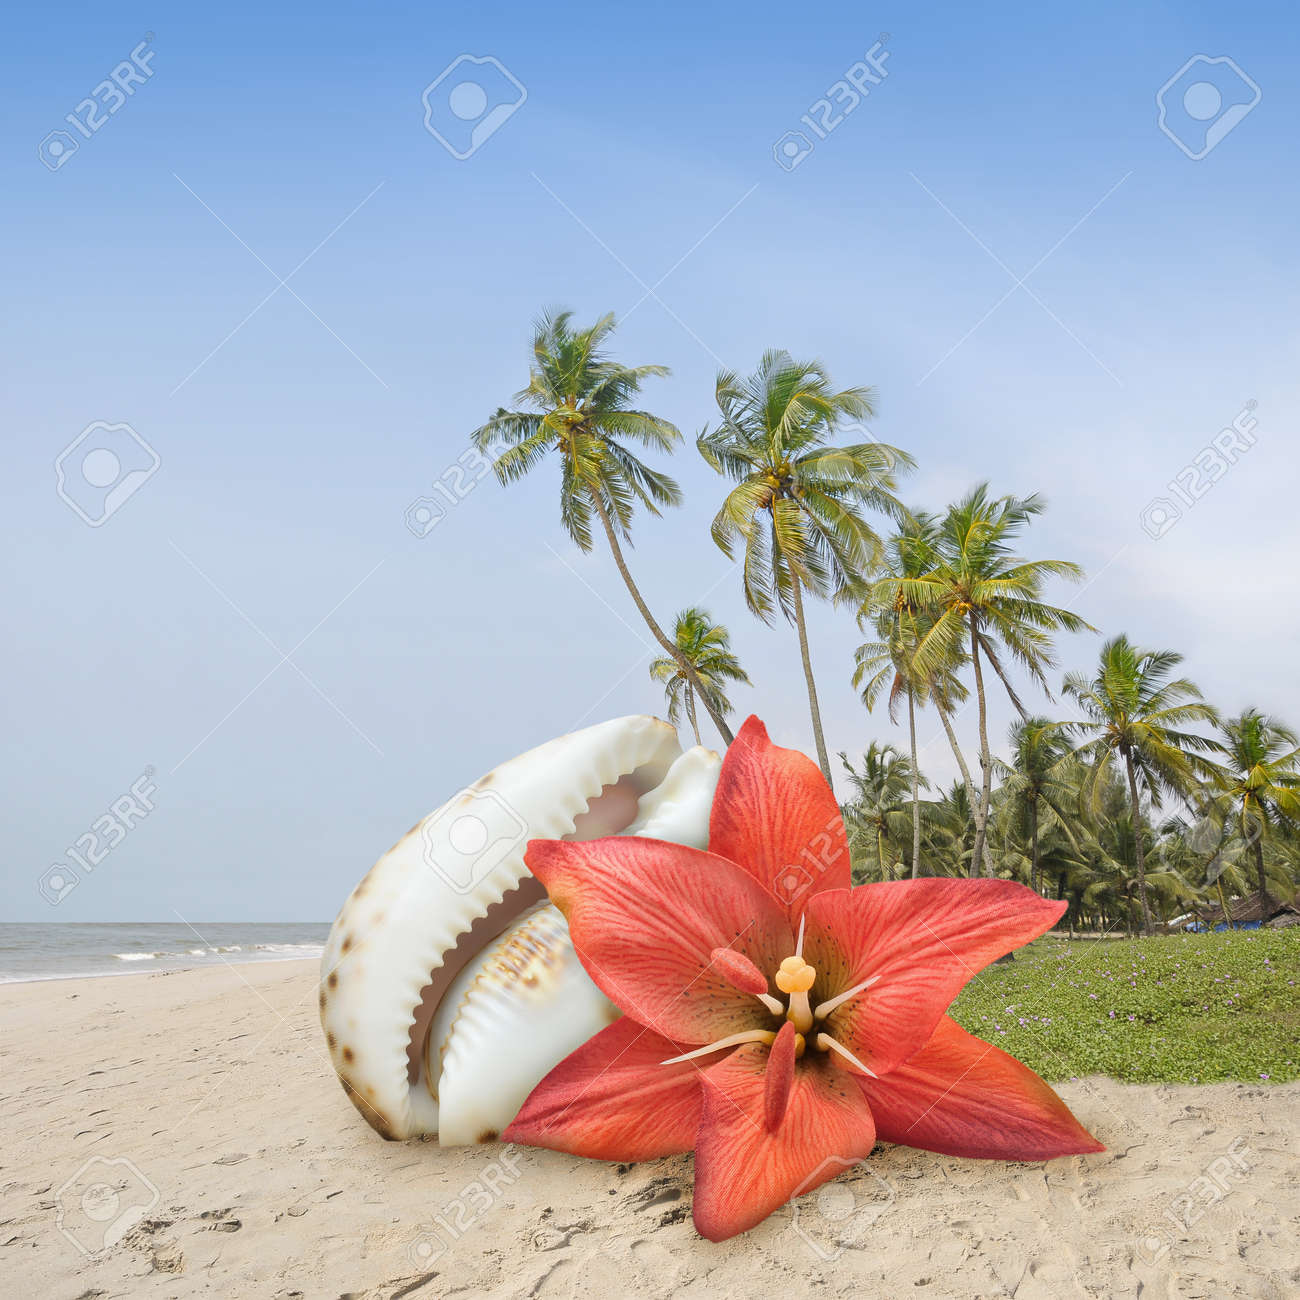 Flower on the beach in a tropical island. Stock Photo - 10411926